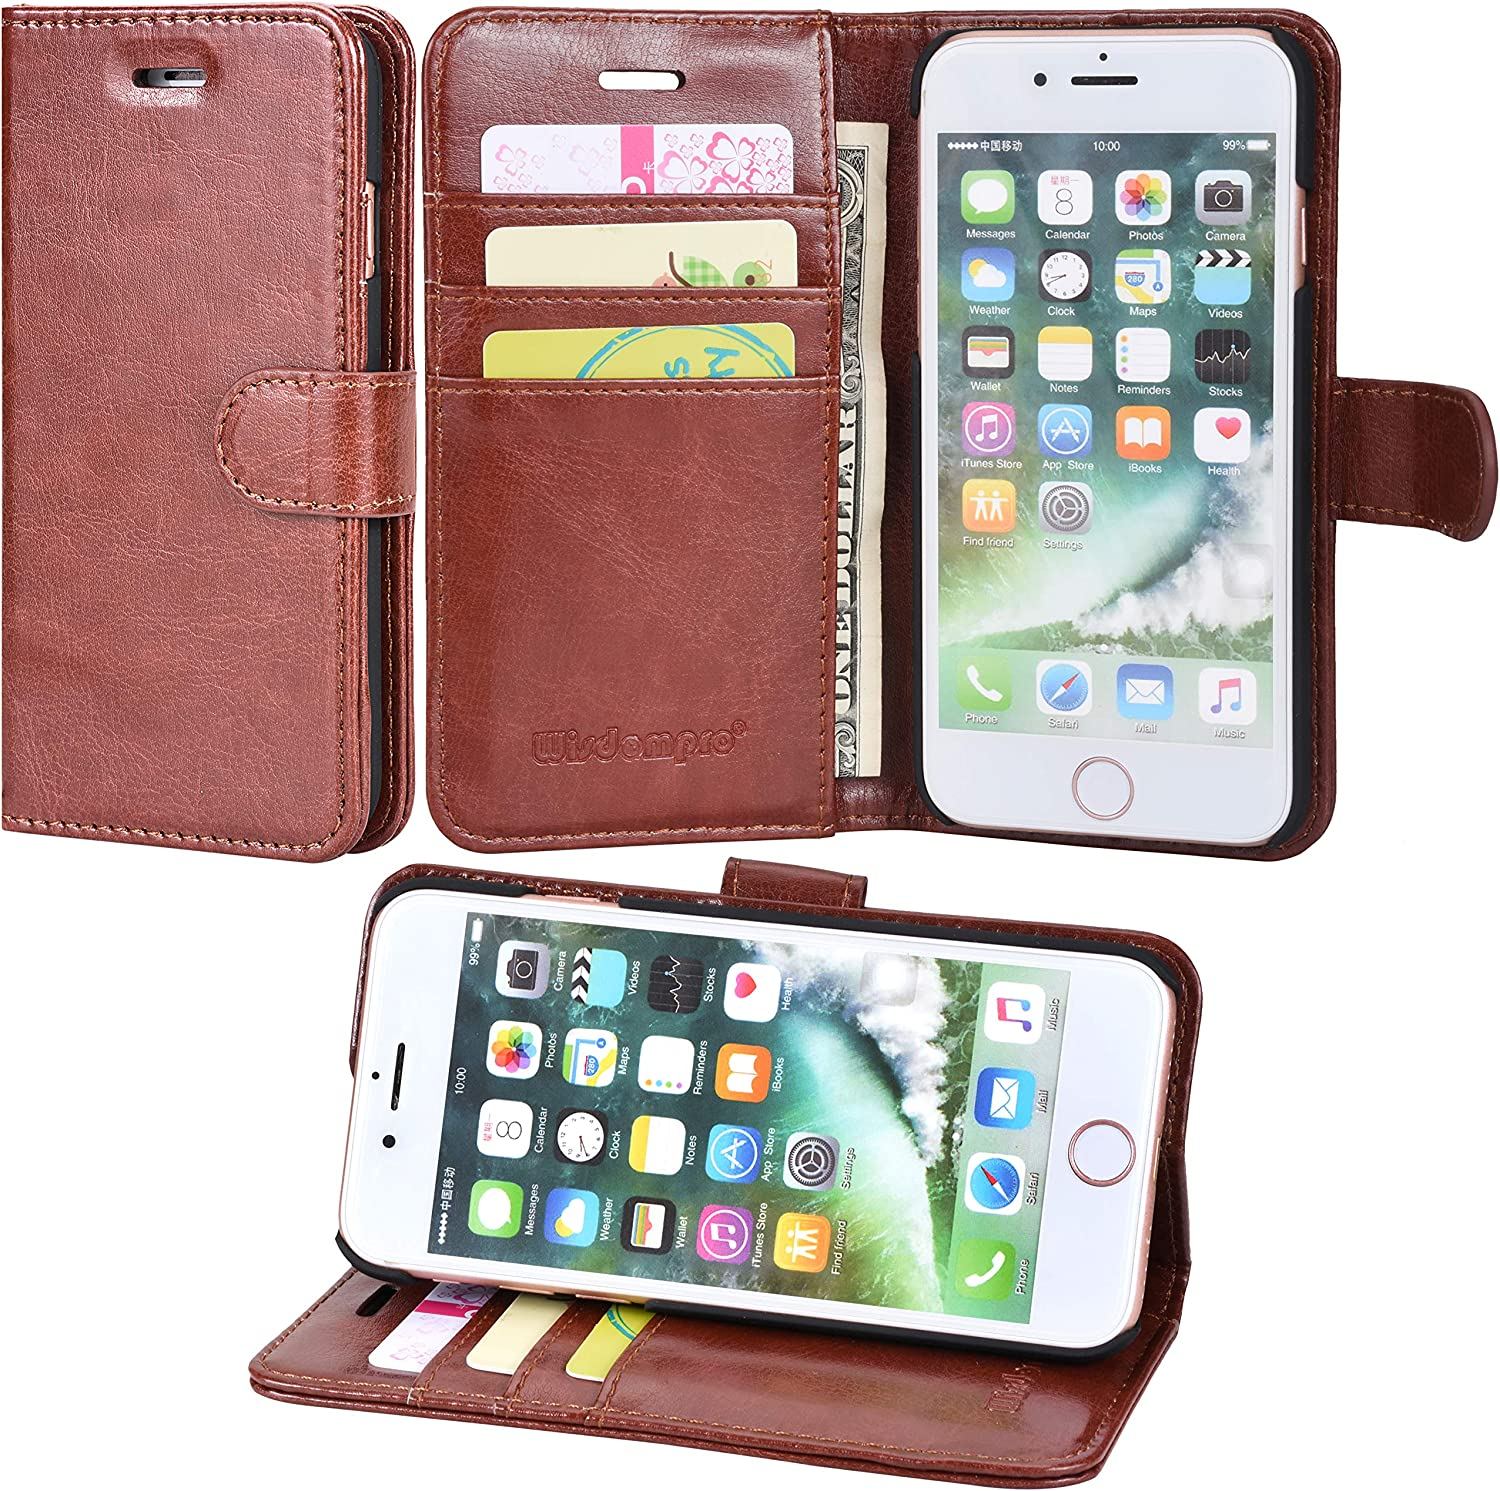 Wisdompro iPhone SE 2020 Case, iPhone 8 Case, iPhone 7 Case, Premium PU Leather 2-in-1 Protective Folio Flip Wallet Case with Kickstand & Credit Card Holder Slots for Apple iPhone SE2/8/7 - Brown